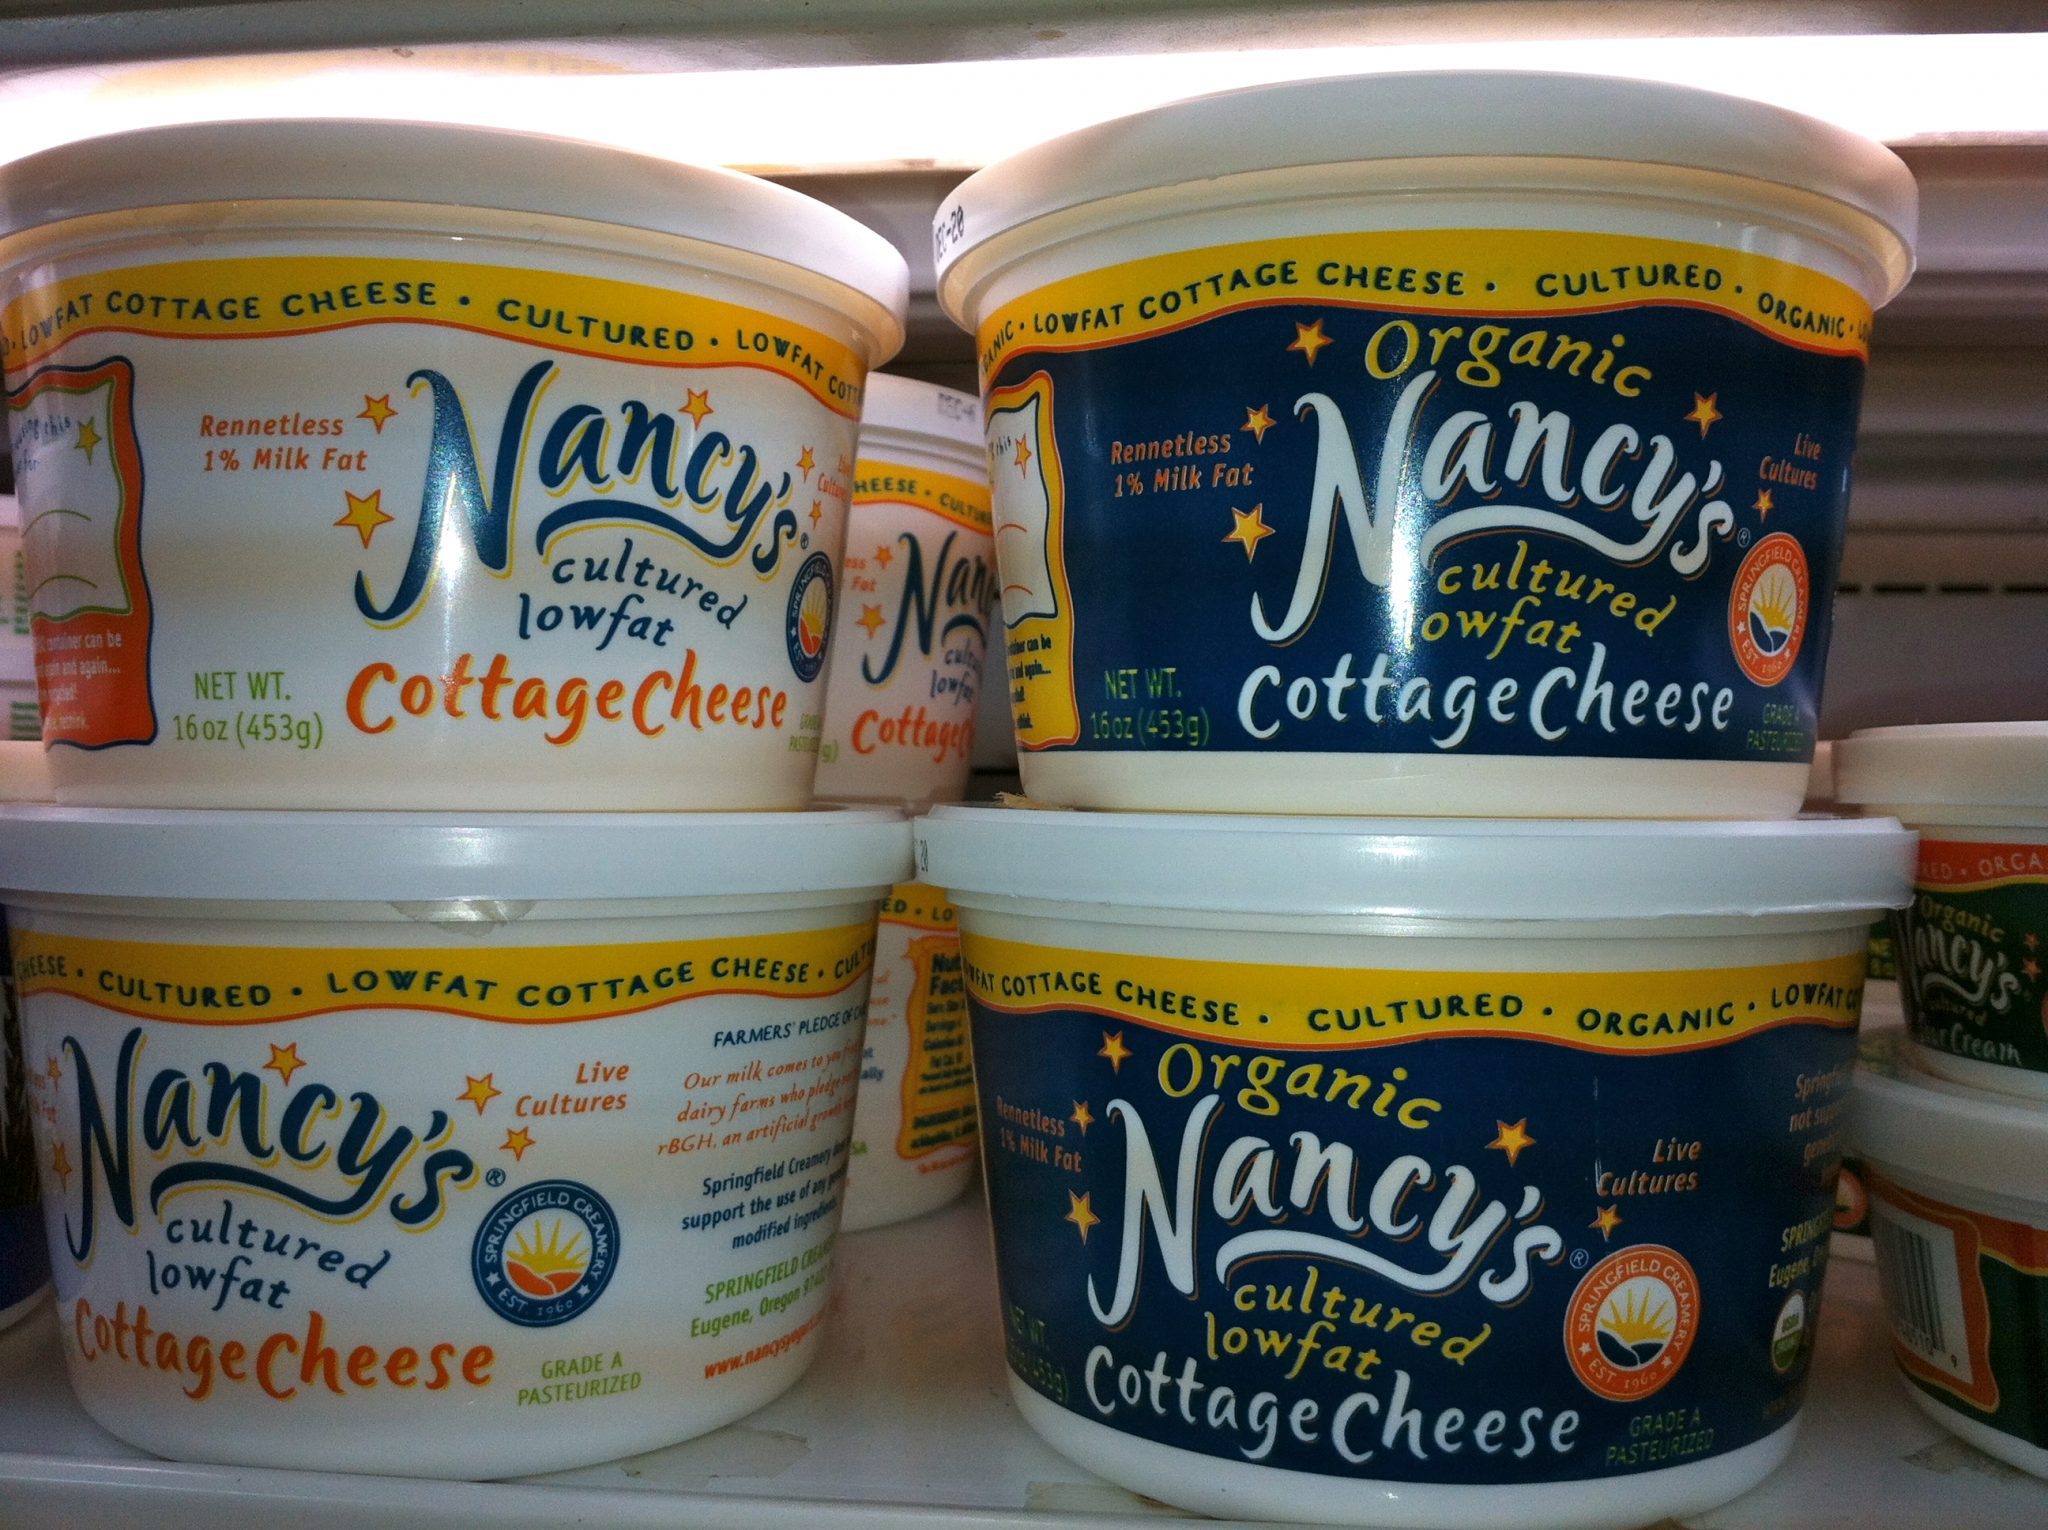 Nancys cultured cottage cheeses have live cultures in them - wonderful product.